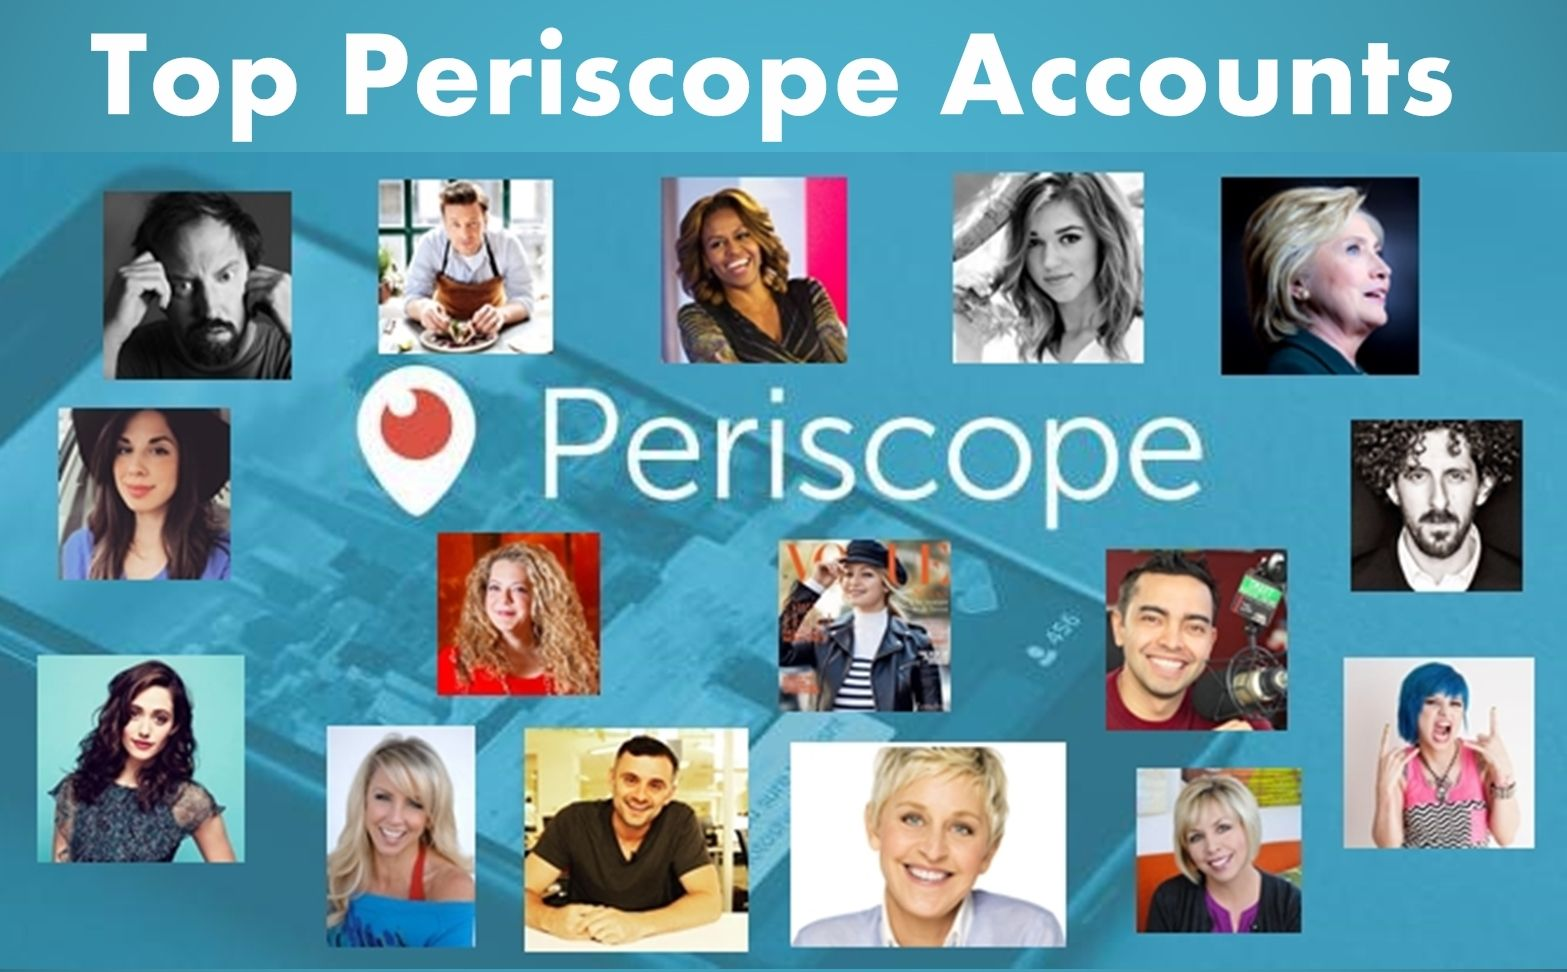 Celebrities on Periscope – Top People to Follow on Periscope